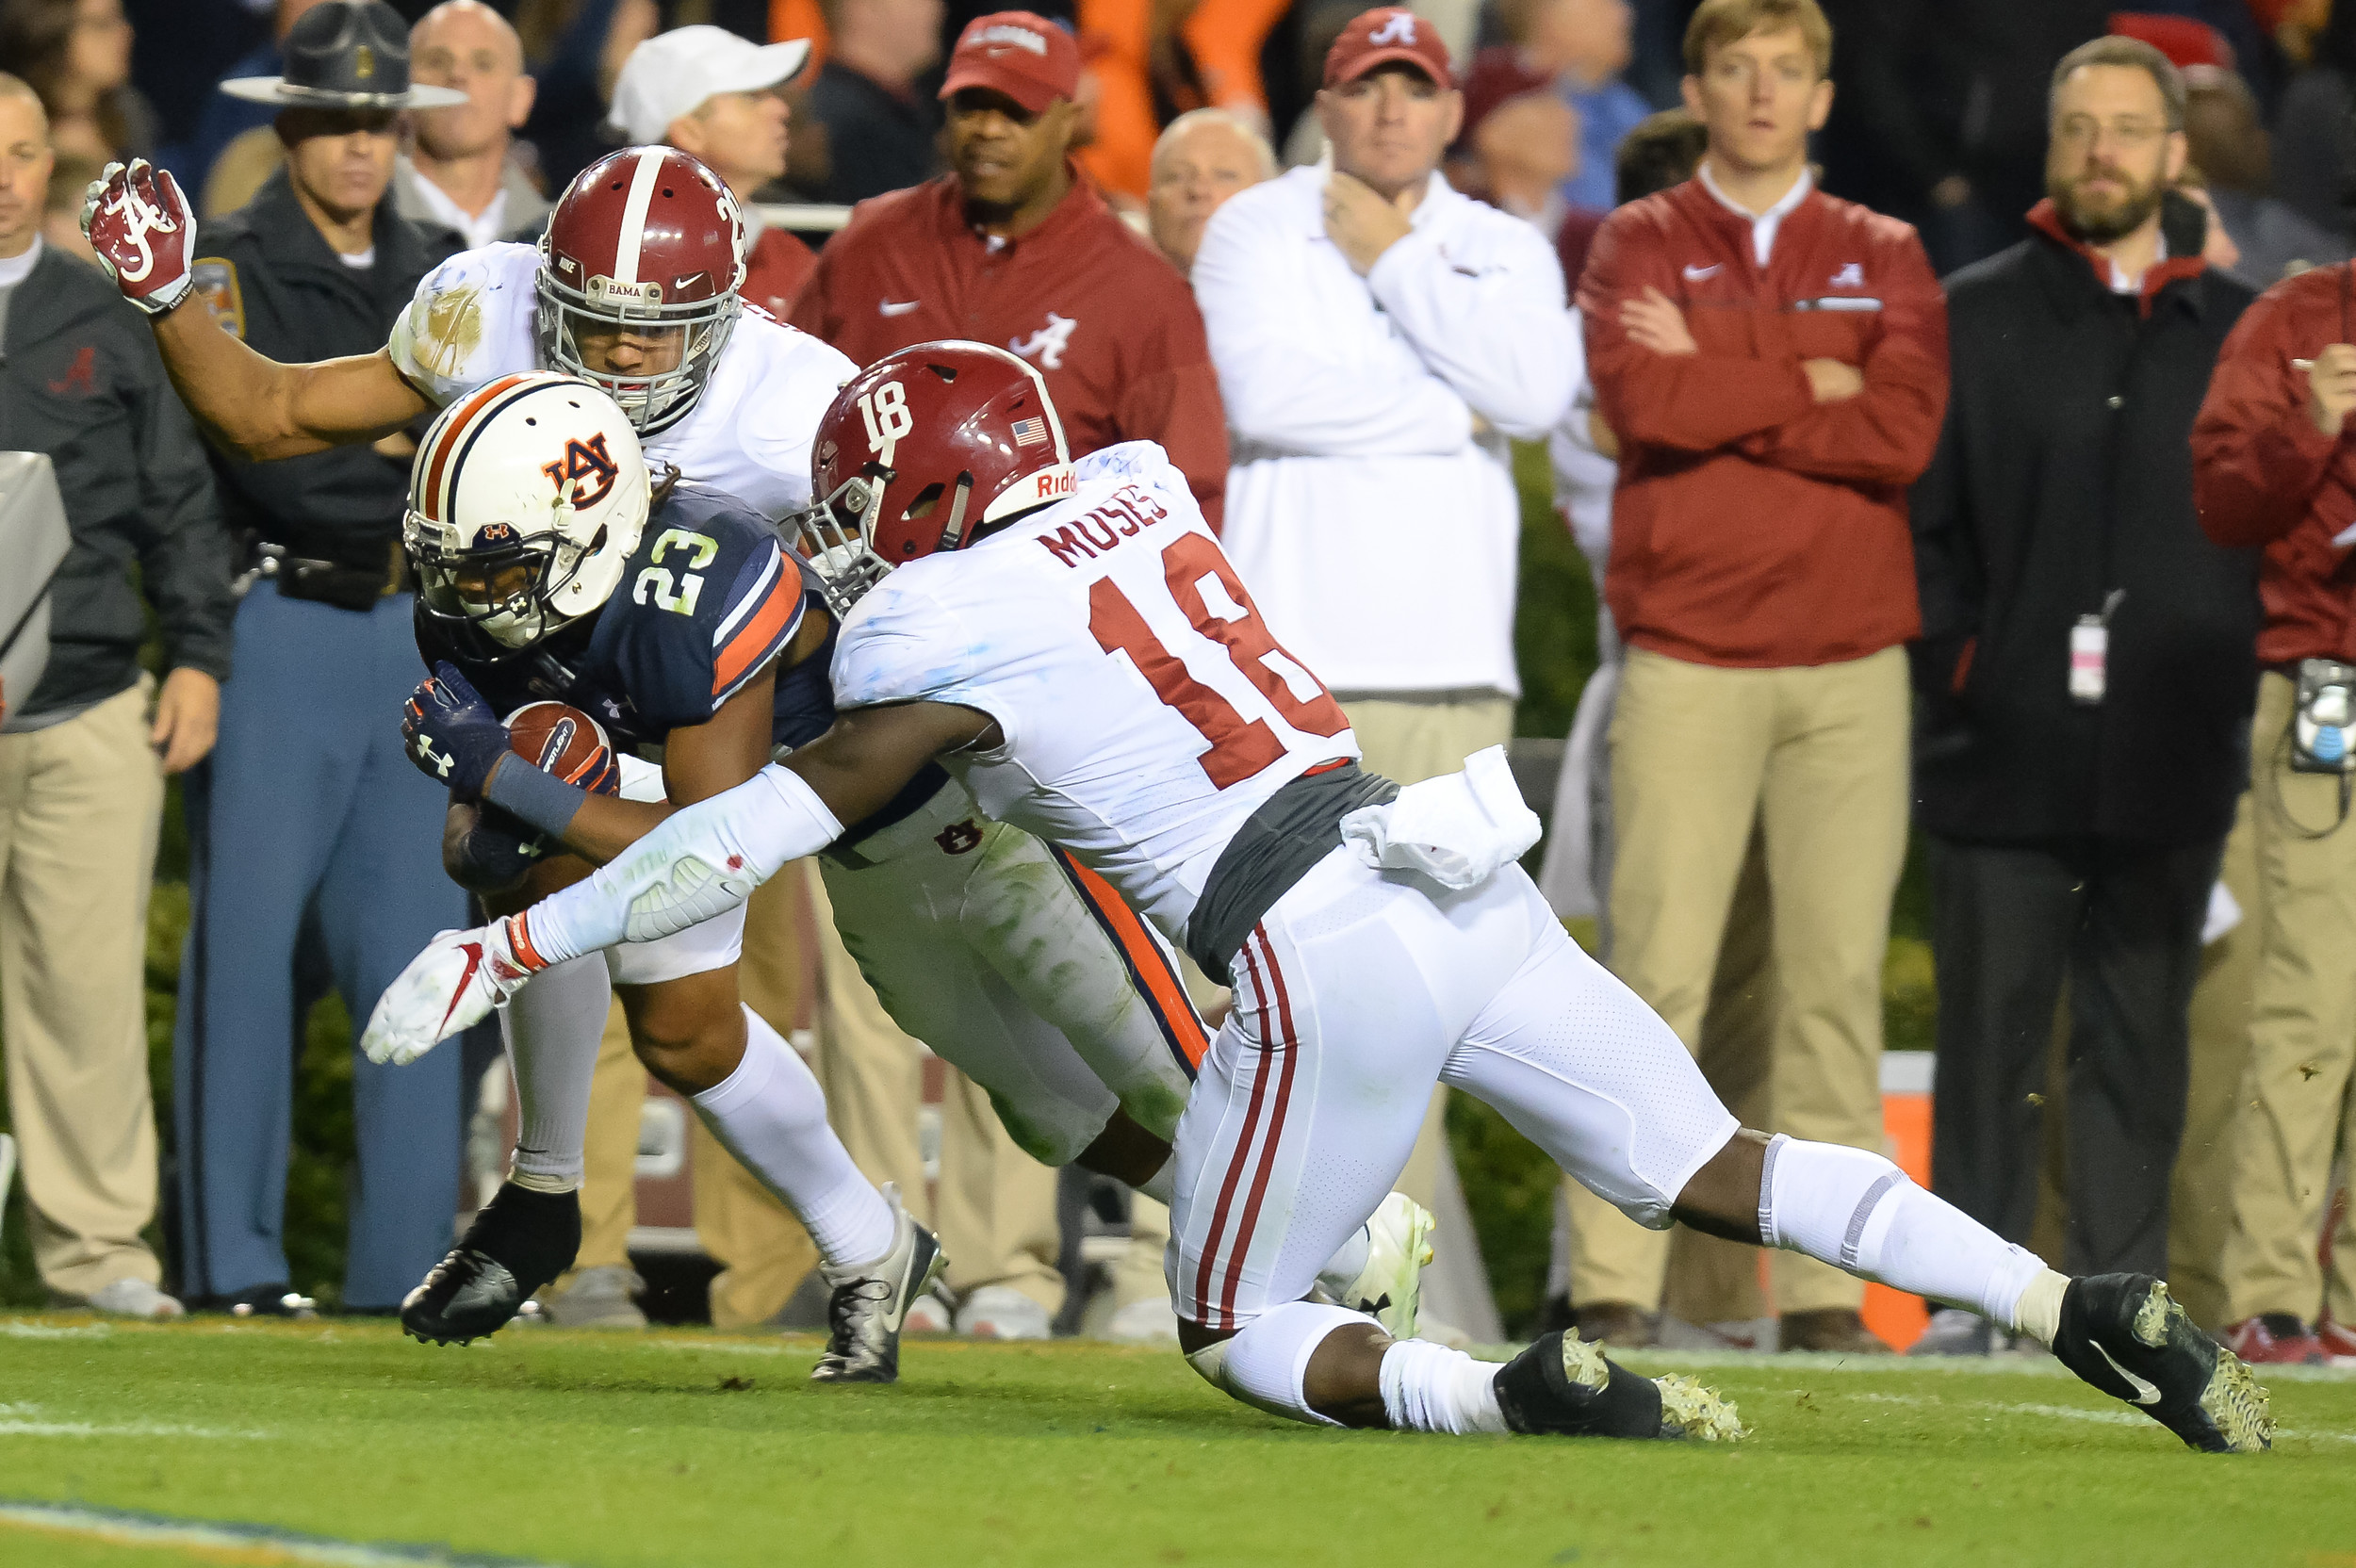 Auburn Tigers wide receiver Ryan Davis (23) is tackled by Alabama Crimson Tide linebacker Dylan Moses and defensive back Minkah Fitzpatrick (29) during the second half of Saturday's game, at Jordan-Hare Stadium.